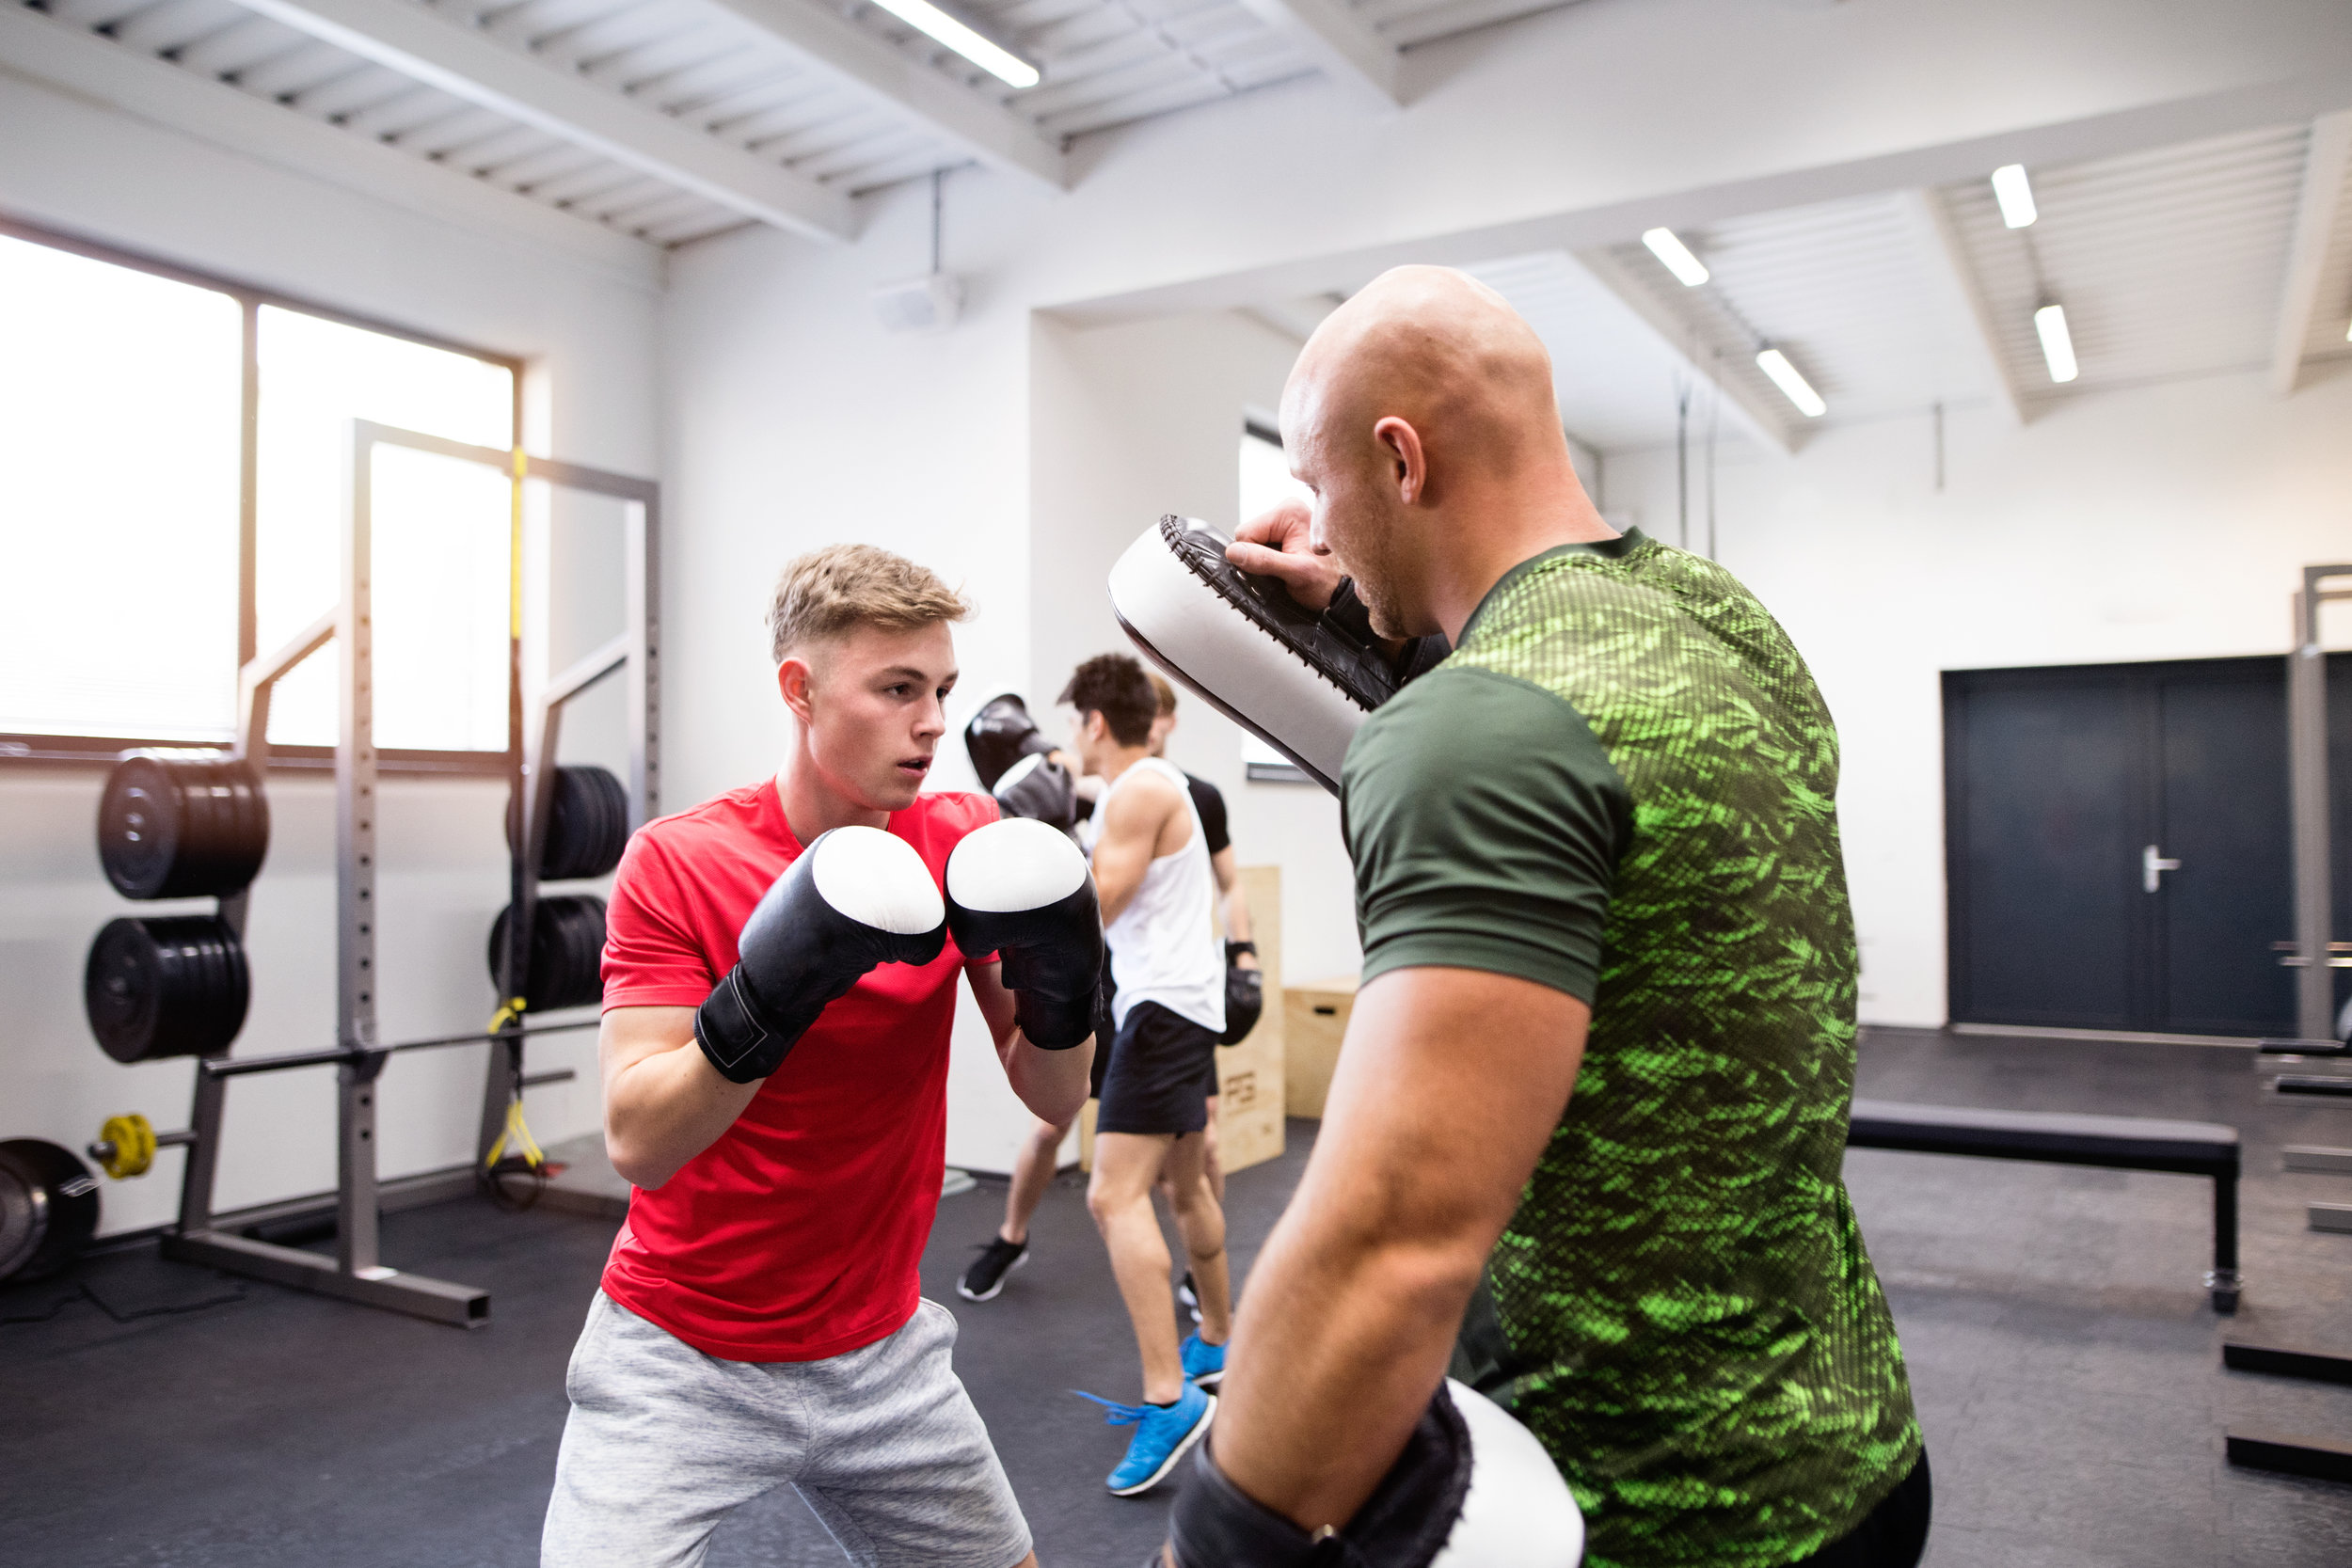 graphicstock-handsome-fit-young-man-boxing-with-his-personal-trainer-athlete-boxers-wearing-boxing-gloves-sparred-in-boxing-gym_SueZlZqLMb.jpeg